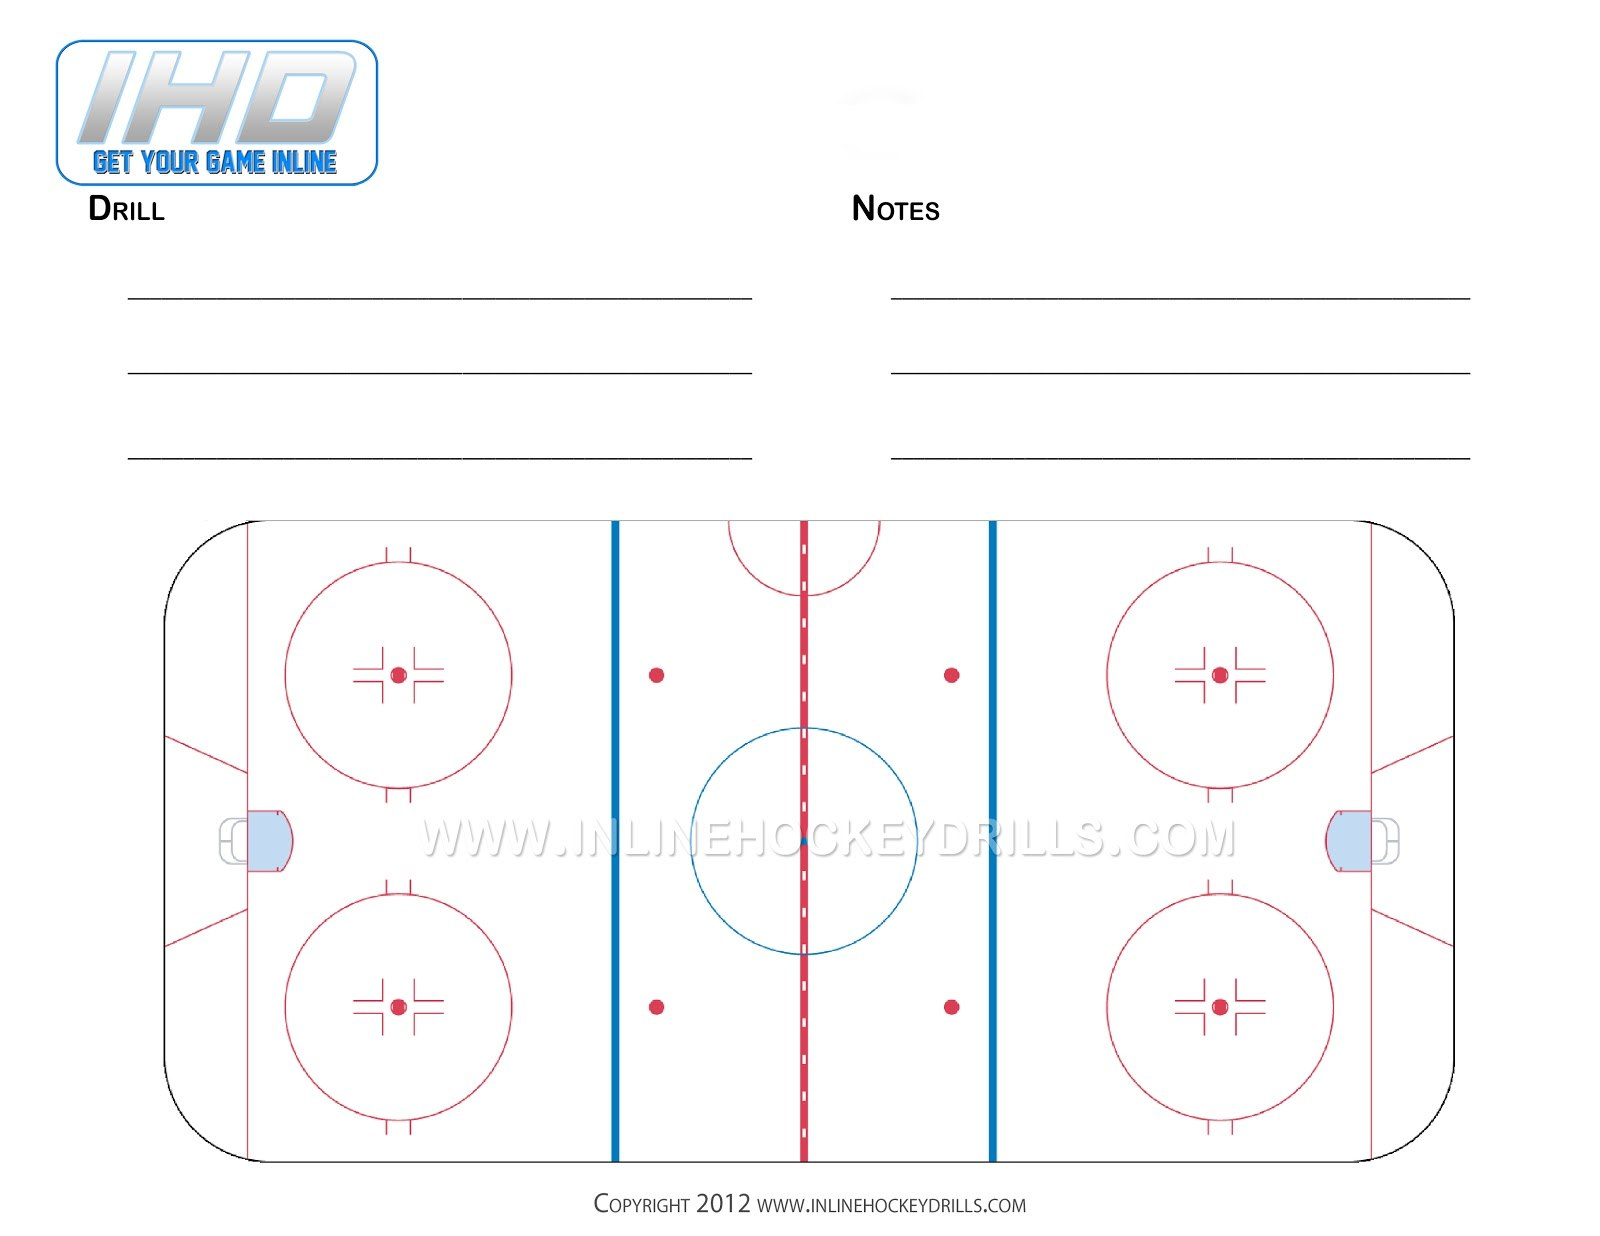 Hockey Practice Plan Template Full Rink Blank ~ Tinypetition Inside Blank Hockey Practice Plan Template